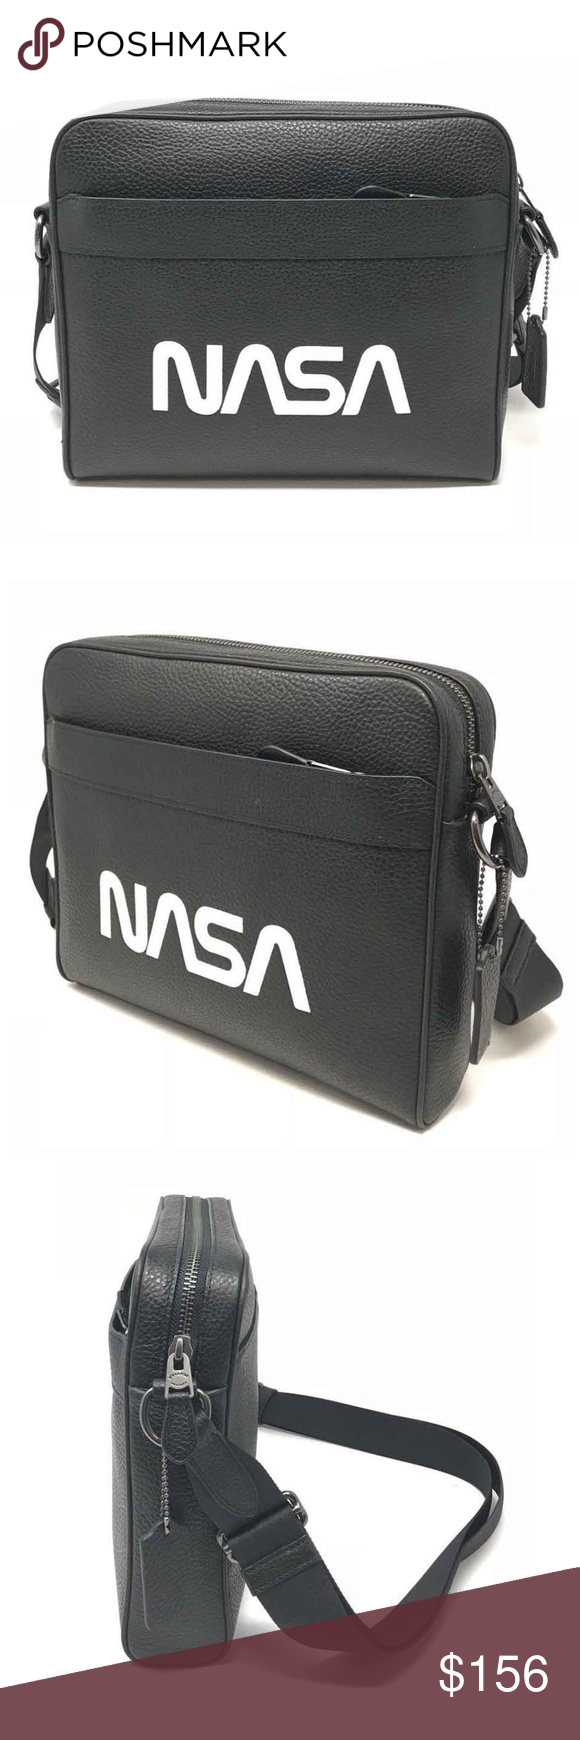 f3d4b1a20d86 Coach X NASA Men s Charles Camera Leather Bag Coach X NASA Men s Charles  Camera Bag With